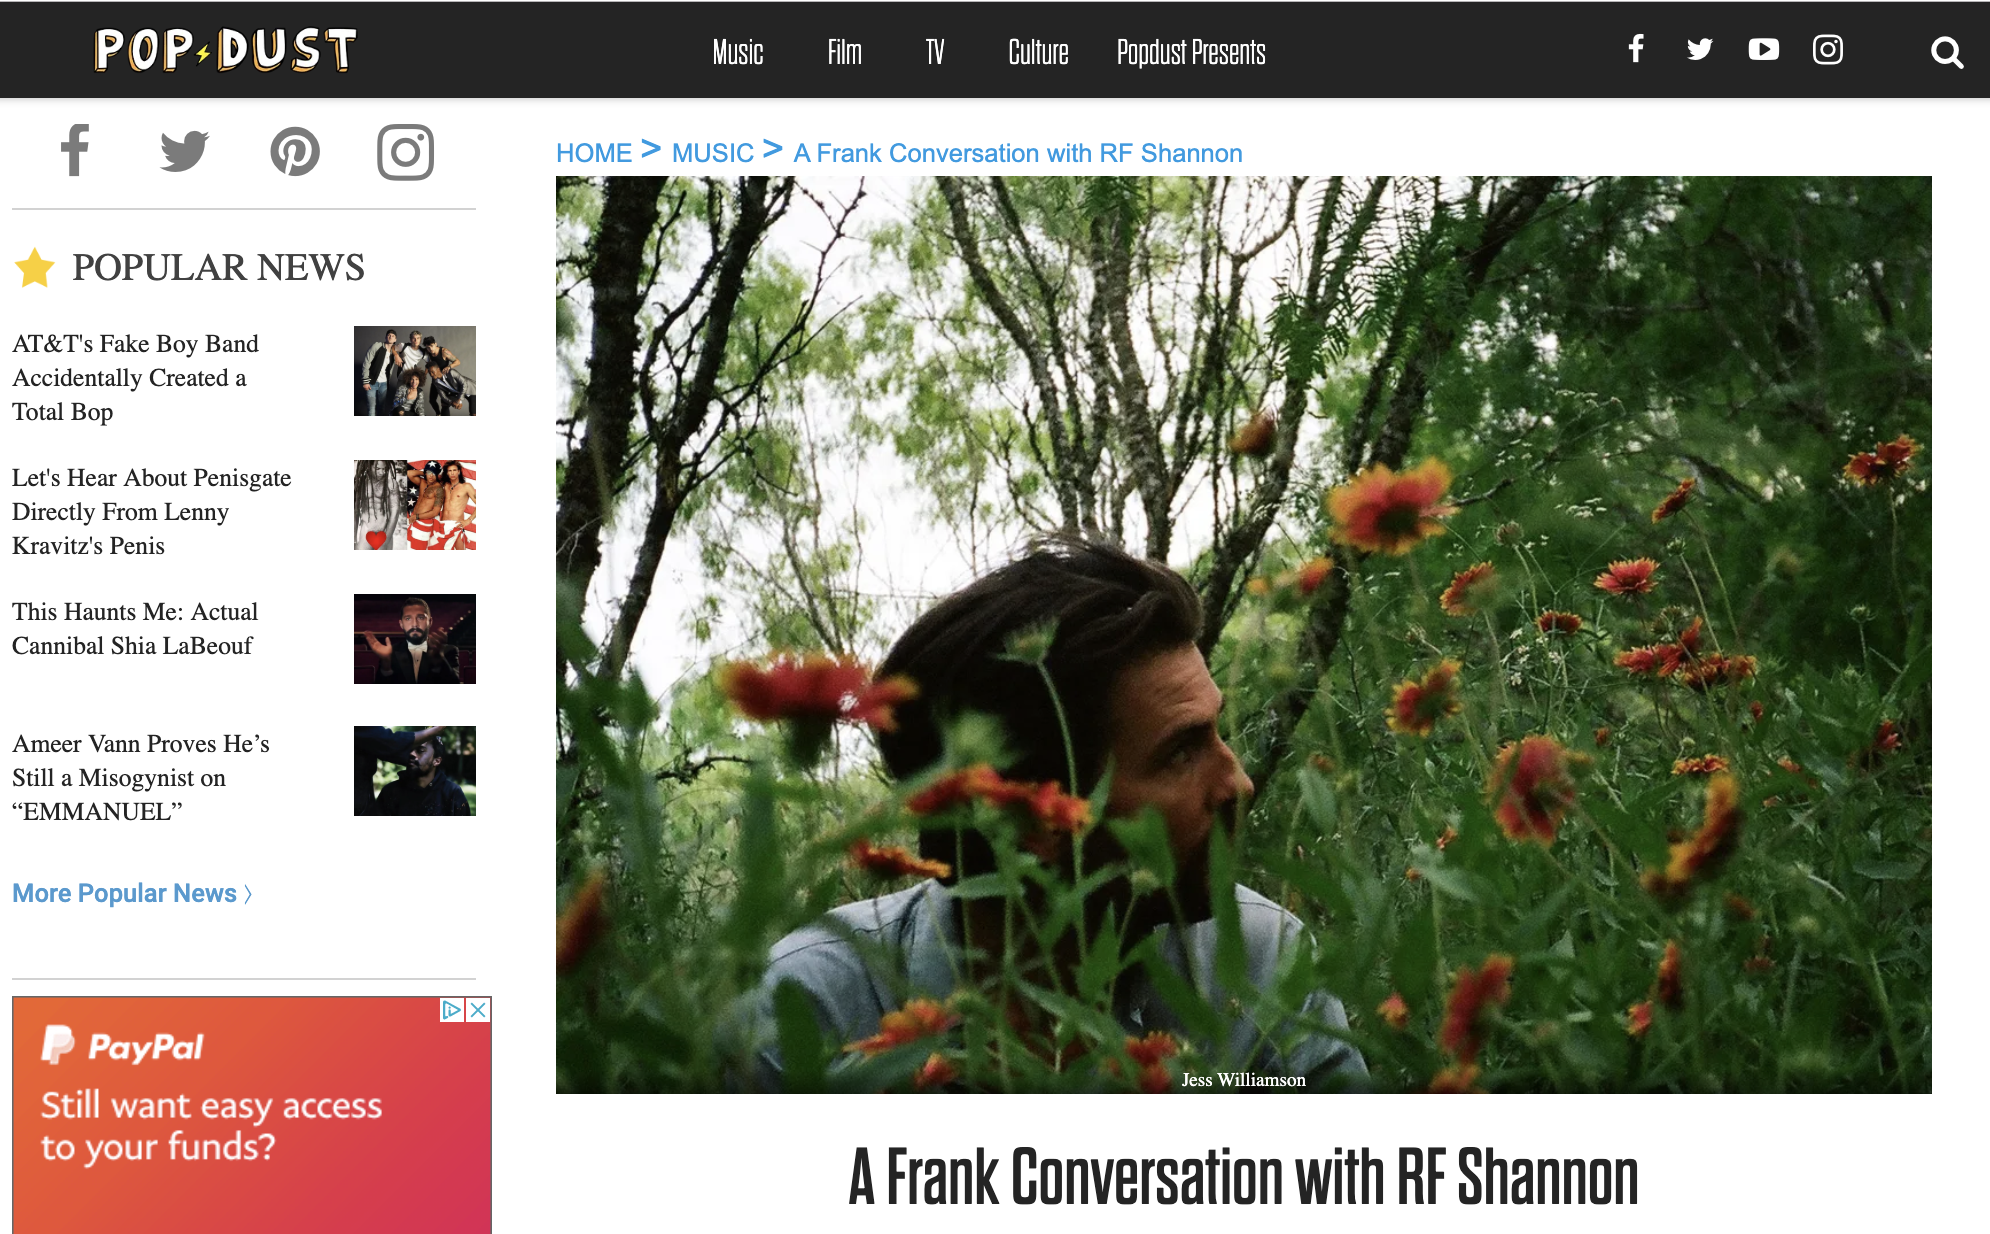 Pop Dust Interview withRF Shannon - Sept. 19, 2019Pop Dust sat down with Shane Renfro of RF Shannon to talk money in the music industry, where the band name comes from, and the sense of place in their music. Give it a read here.photo by Jess Williamson